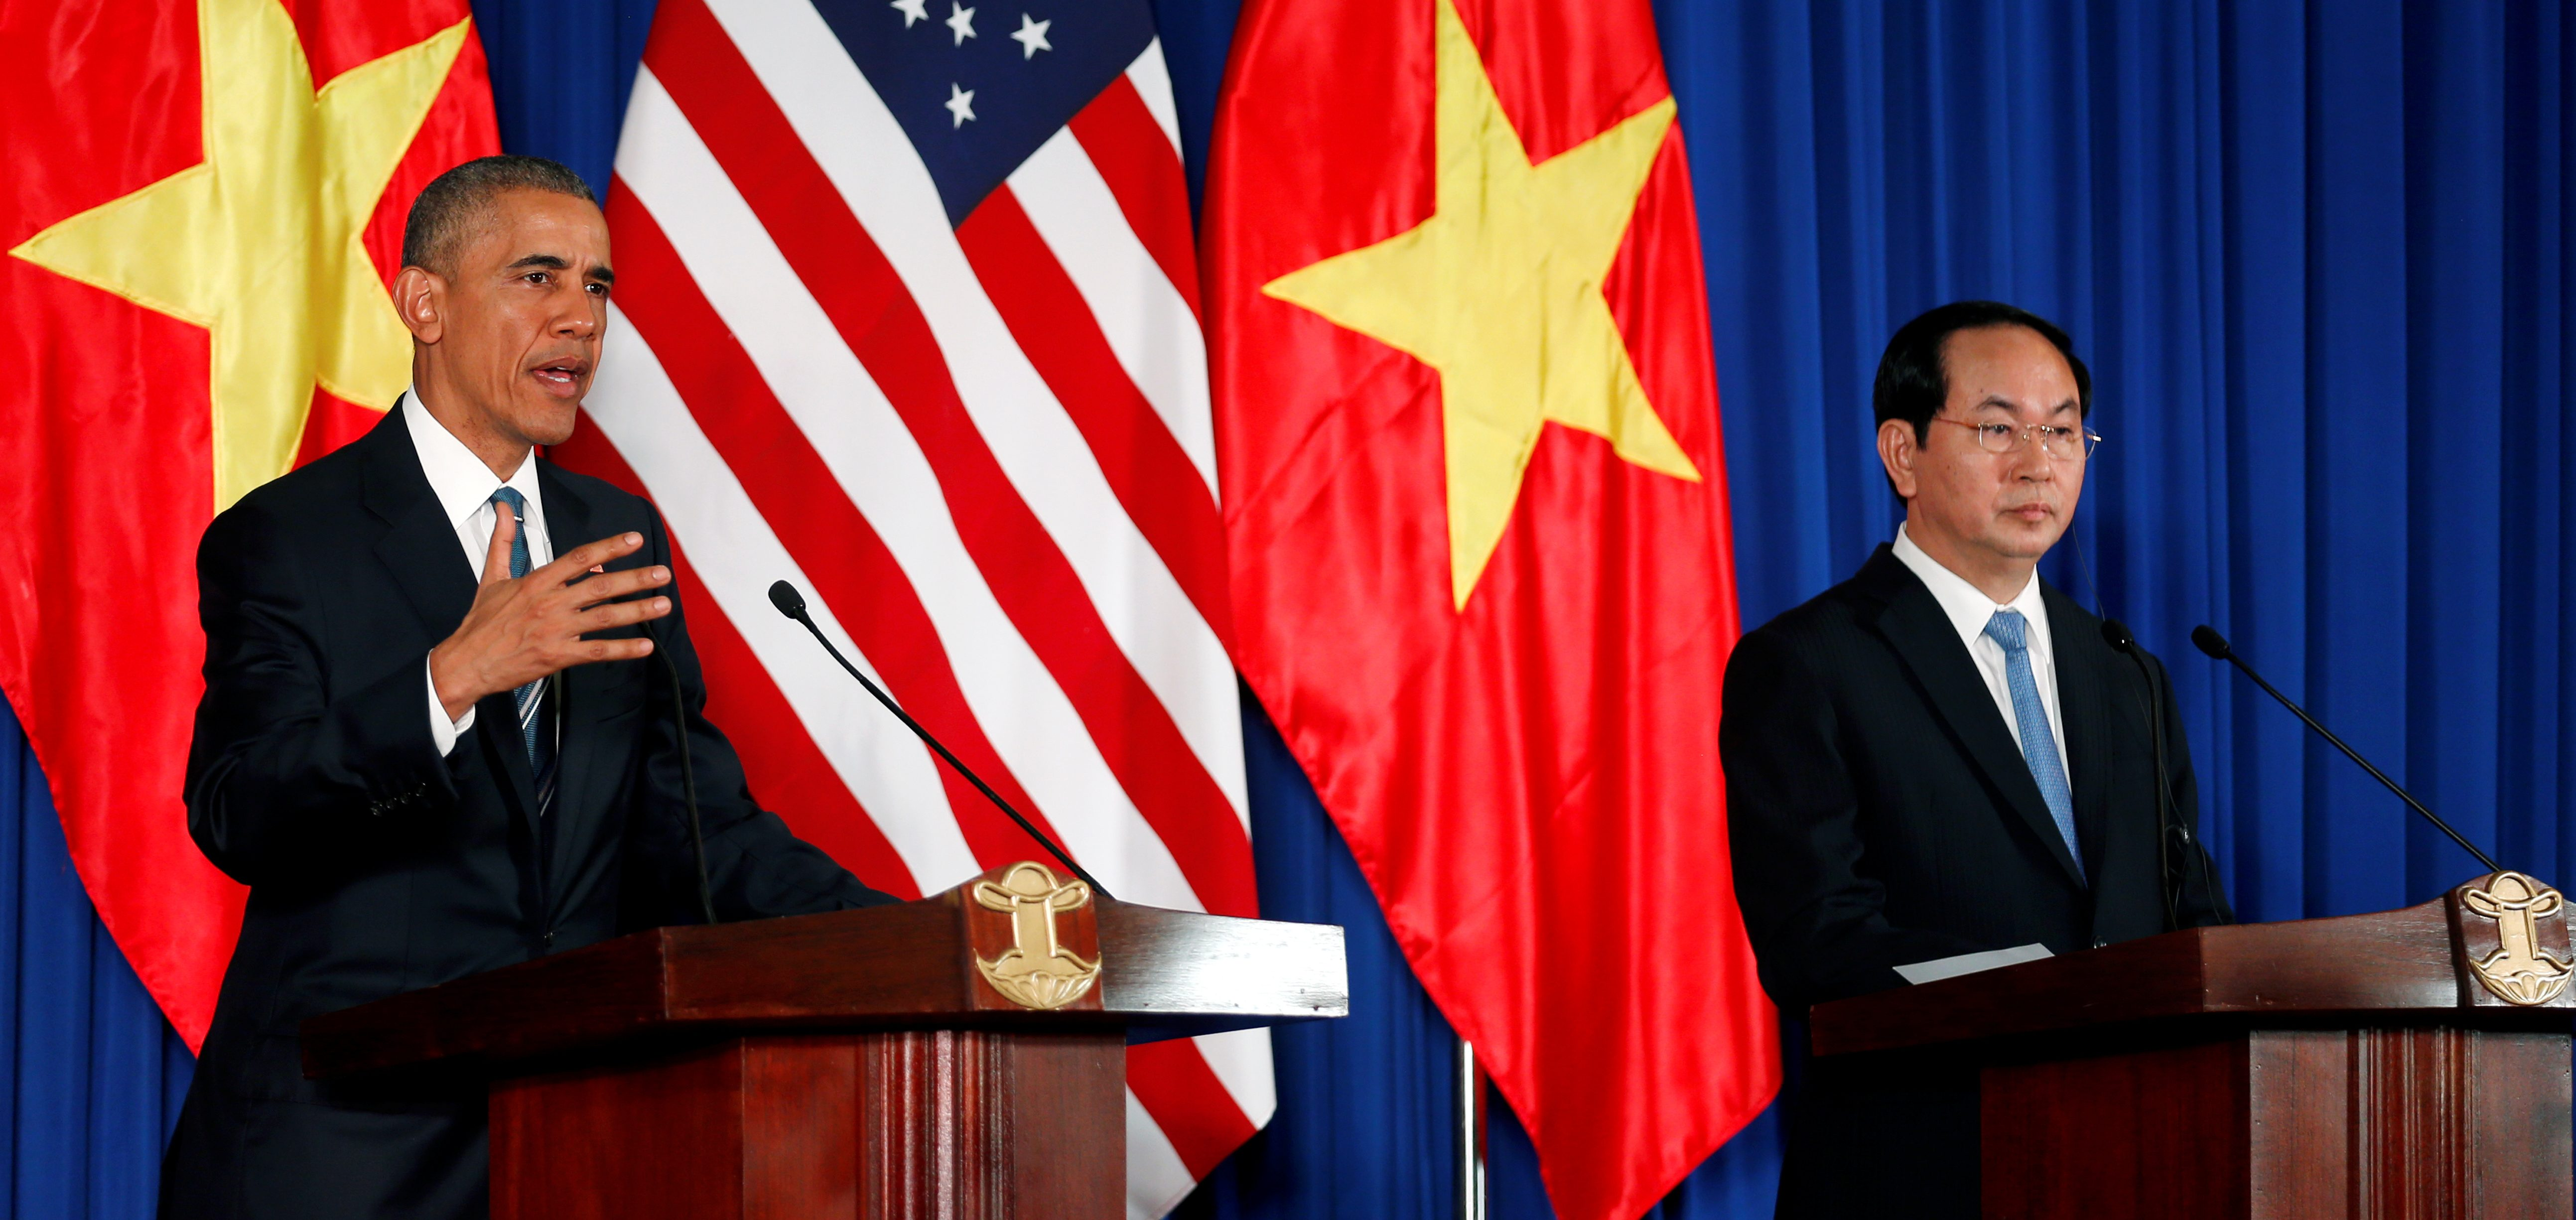 U.S. President Barack Obama attends a press conference with Vietnam's President Tran Dai Quang at the Presidential Palace Compound in Hanoi